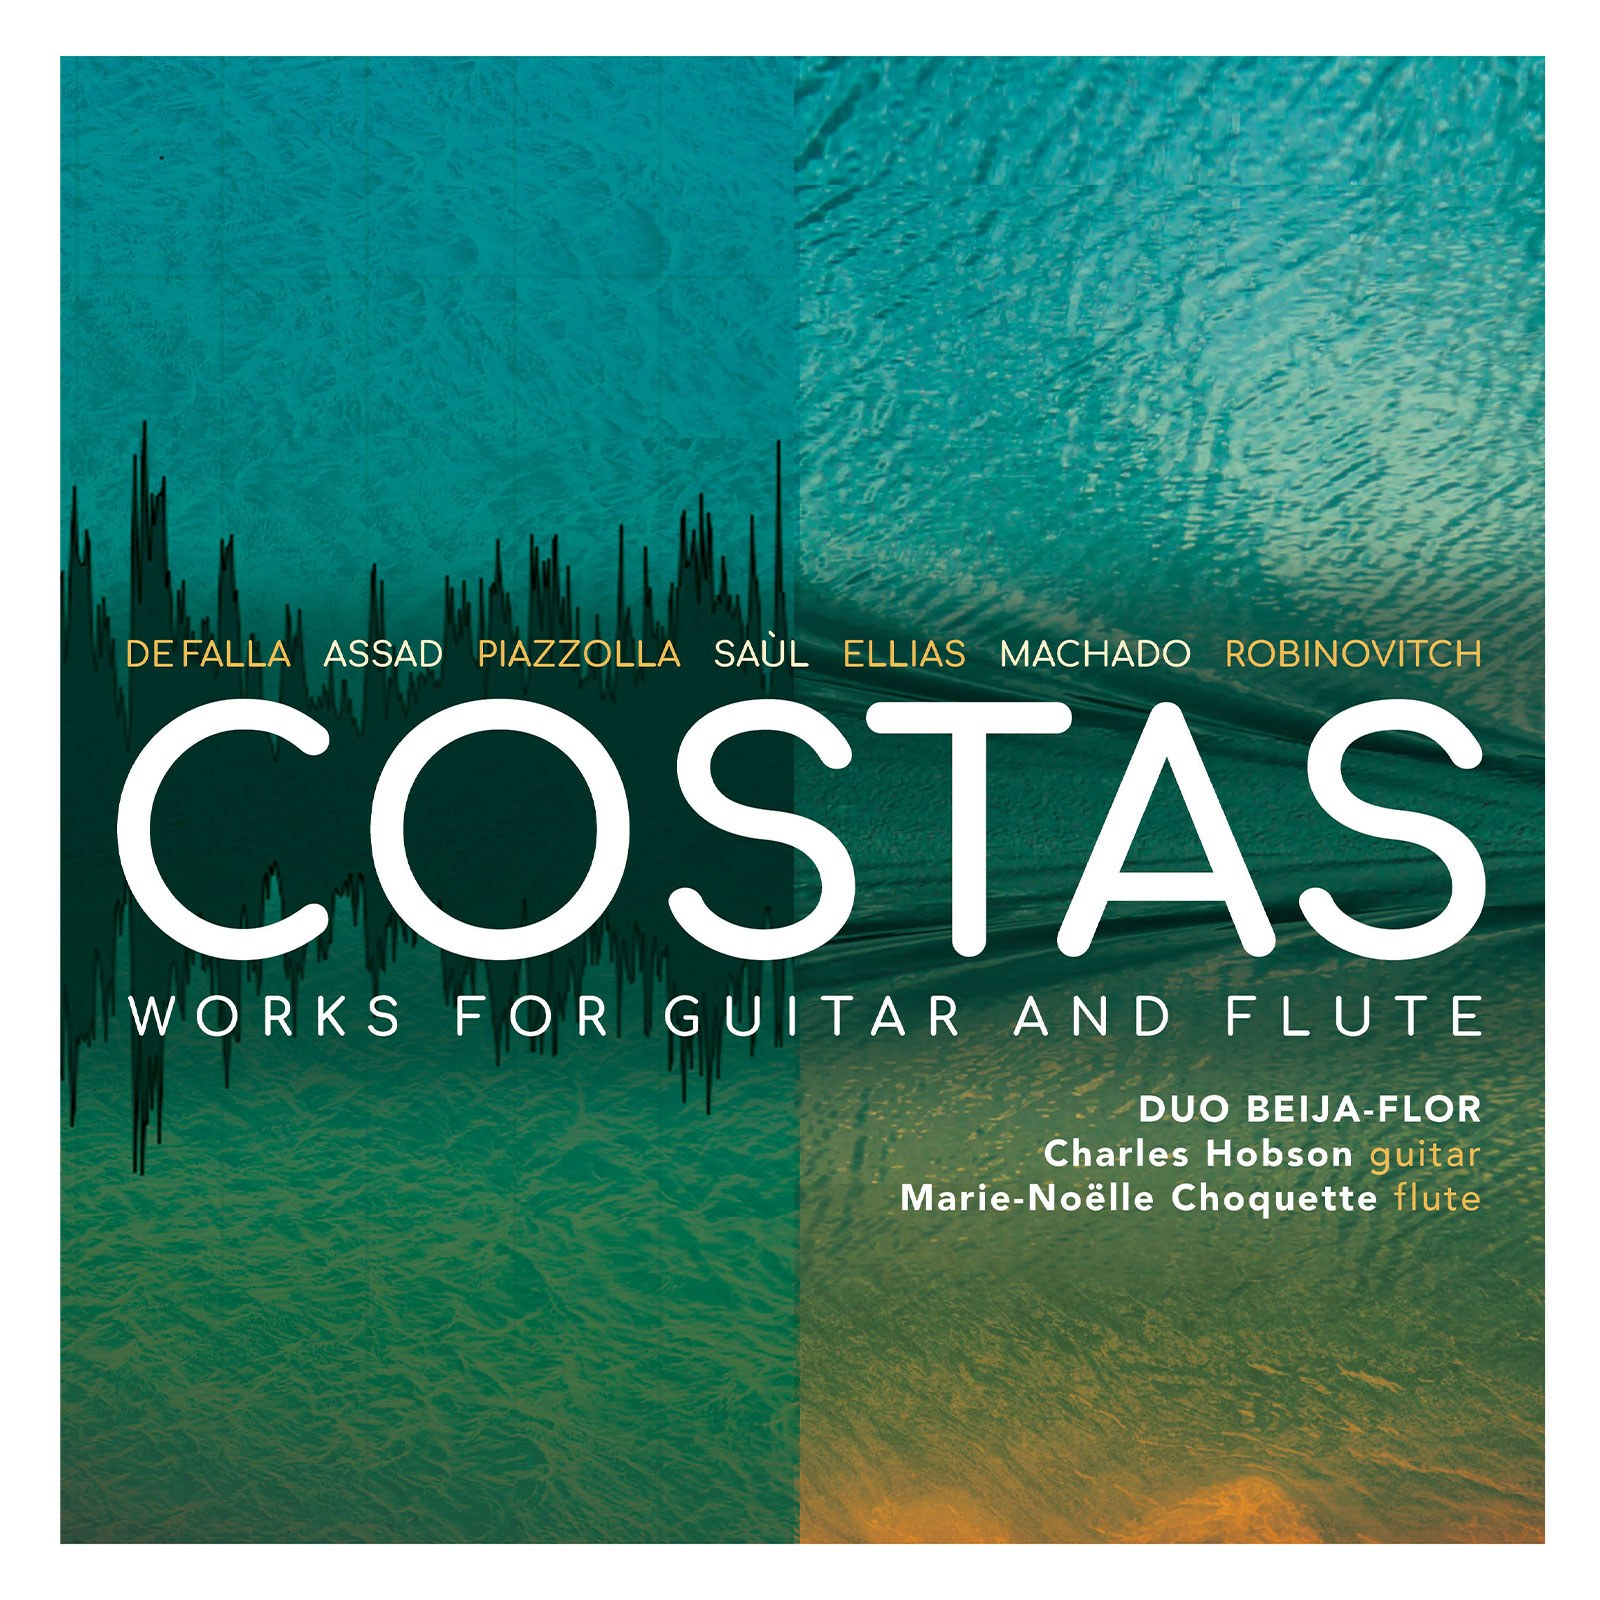 COSTAS - Album Cover